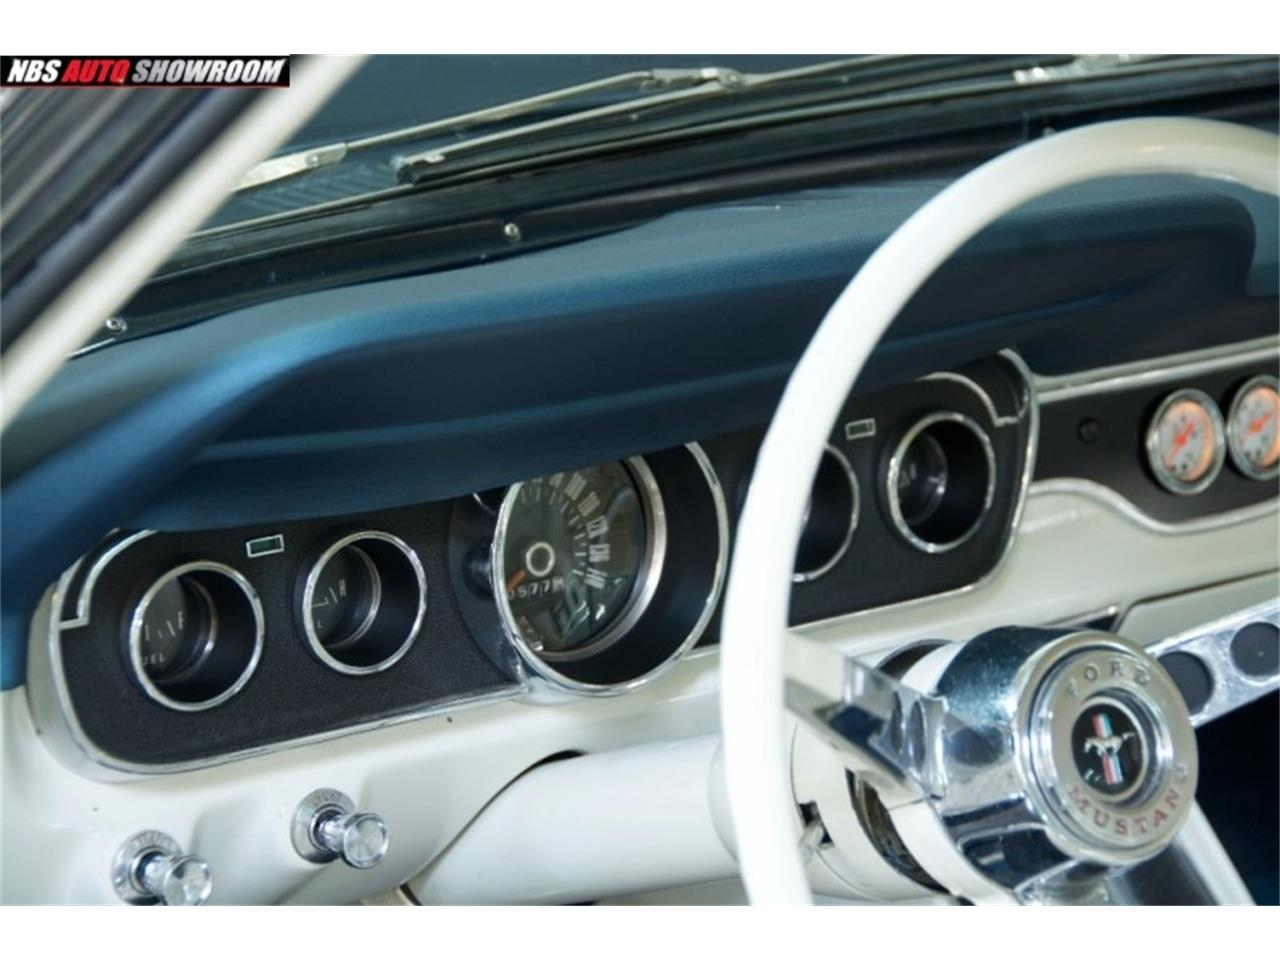 Large Picture of 1965 Ford Mustang - $37,074.00 Offered by NBS Auto Showroom - PHR5